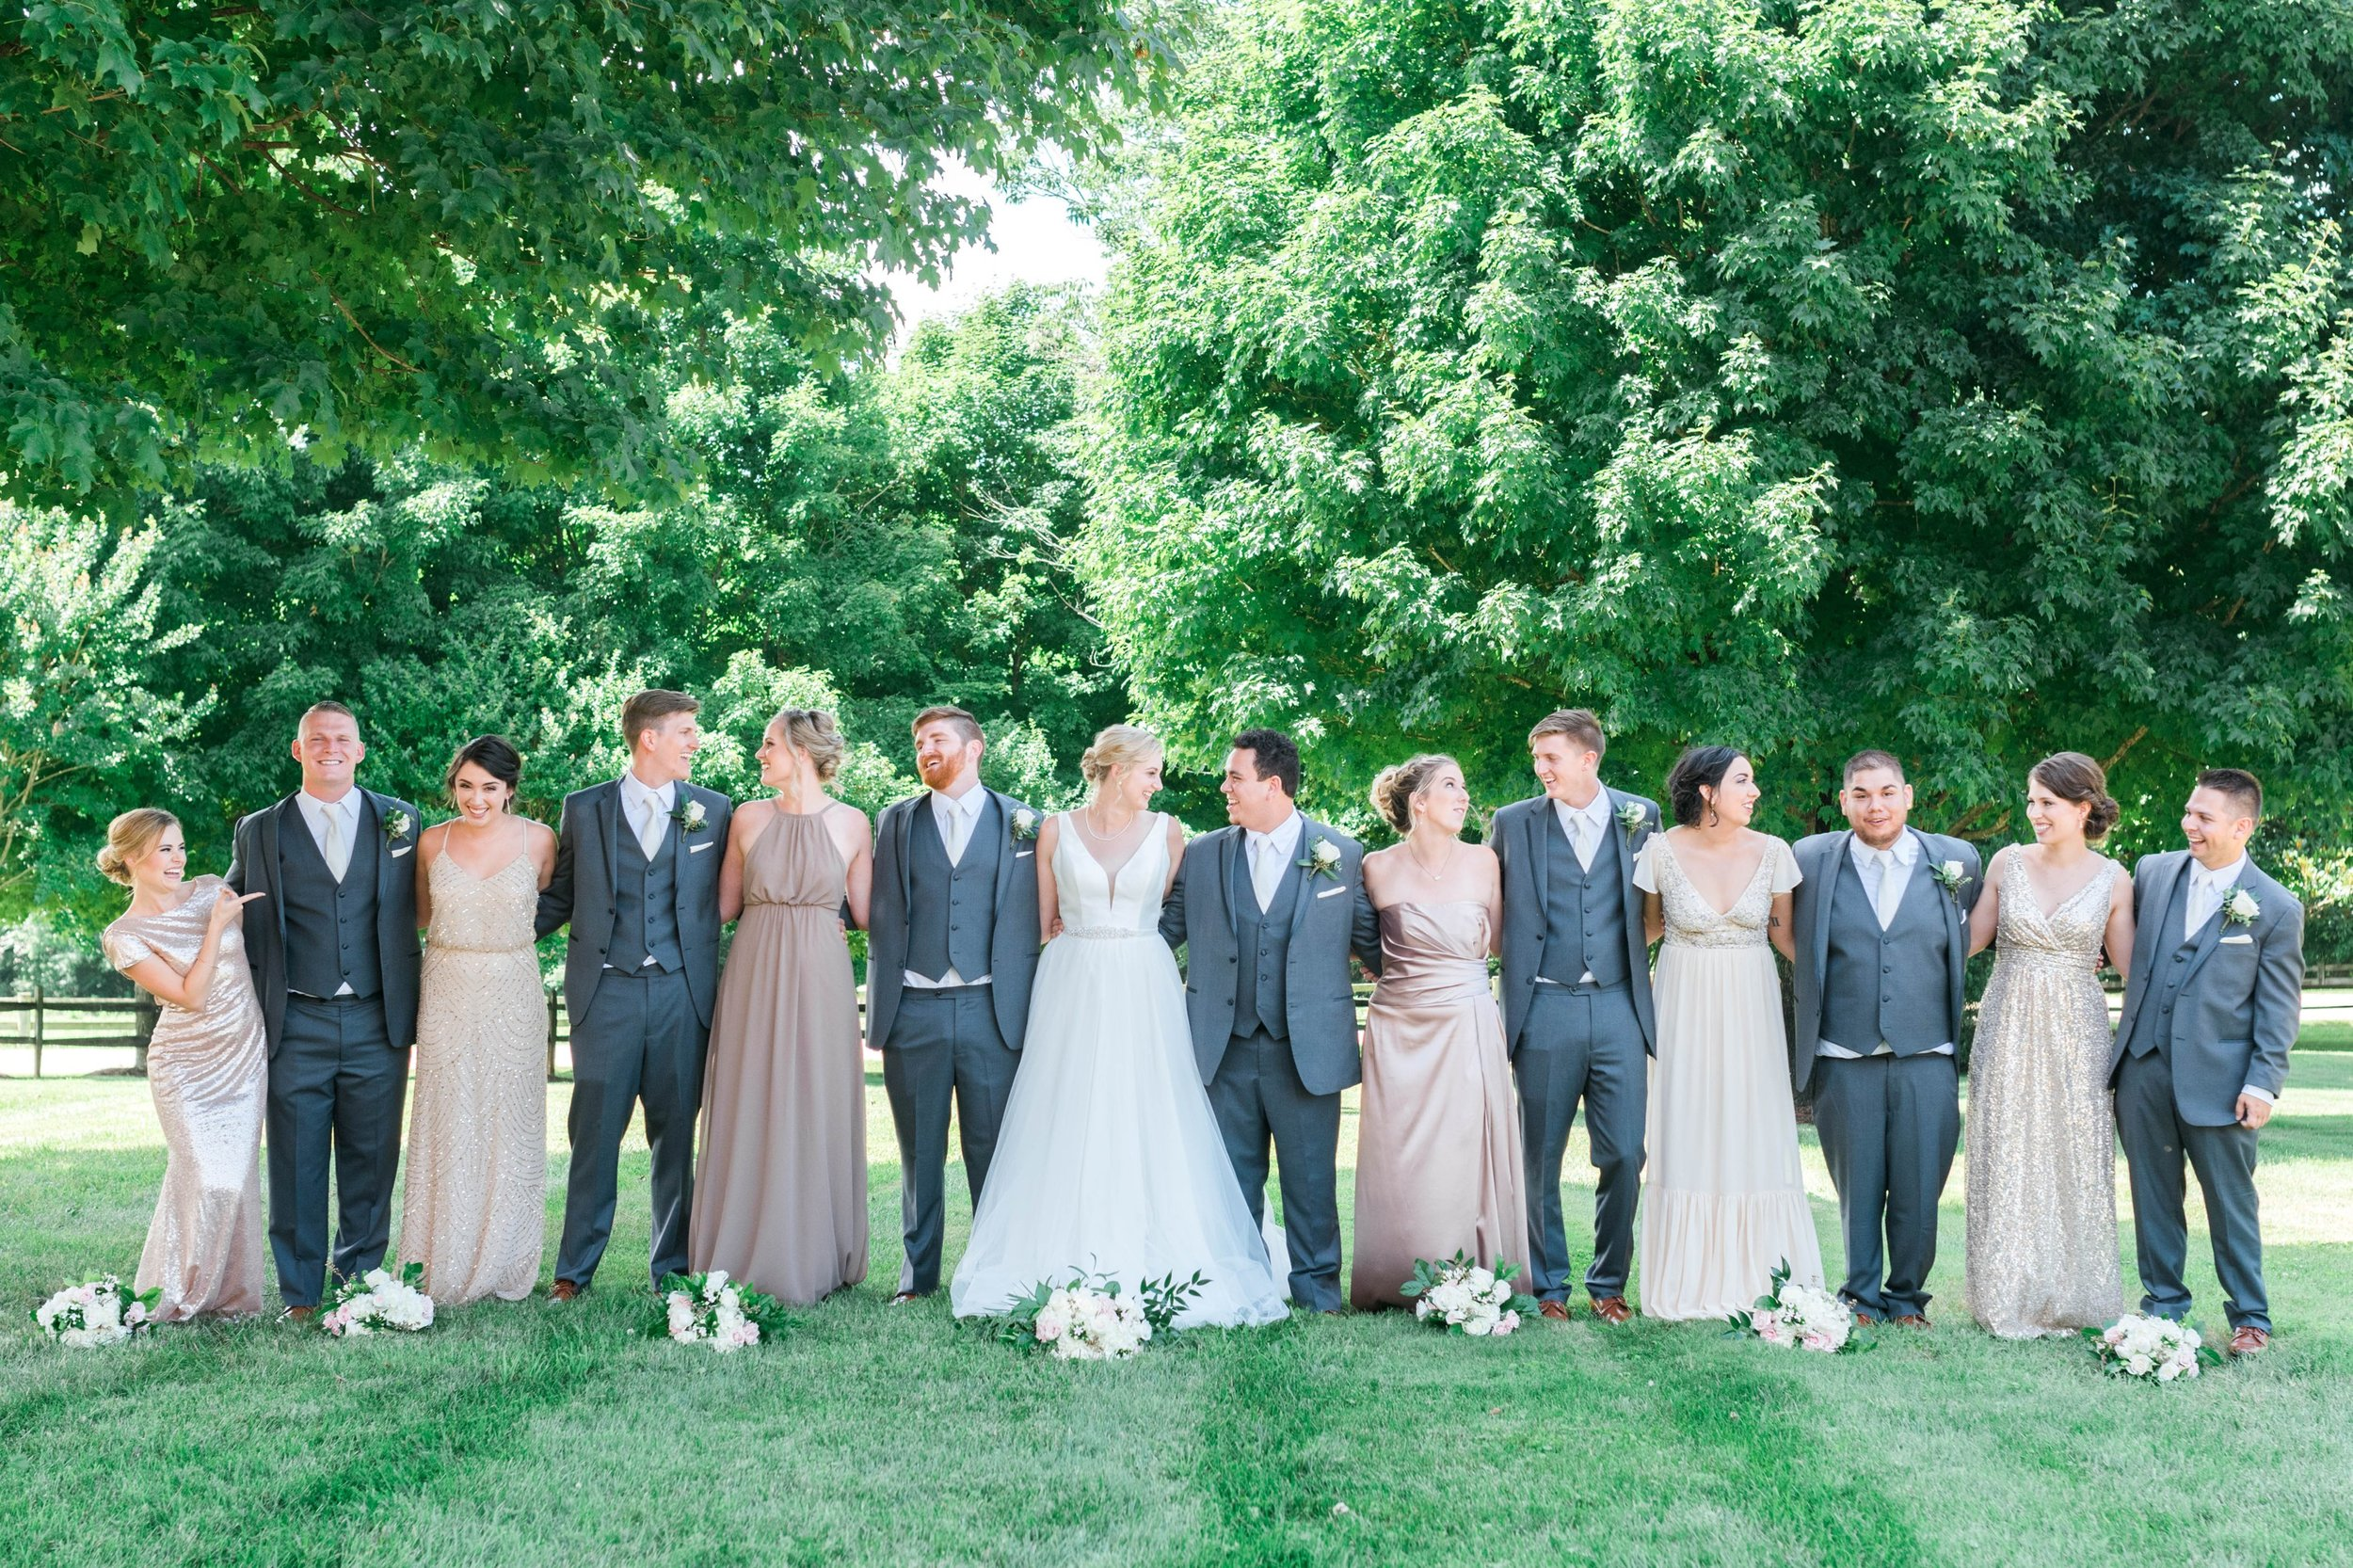 westmanorestate_entwinedevents_lynchburgweddingphotographer_Virginiaweddingphotographer_kateyam 43.jpg